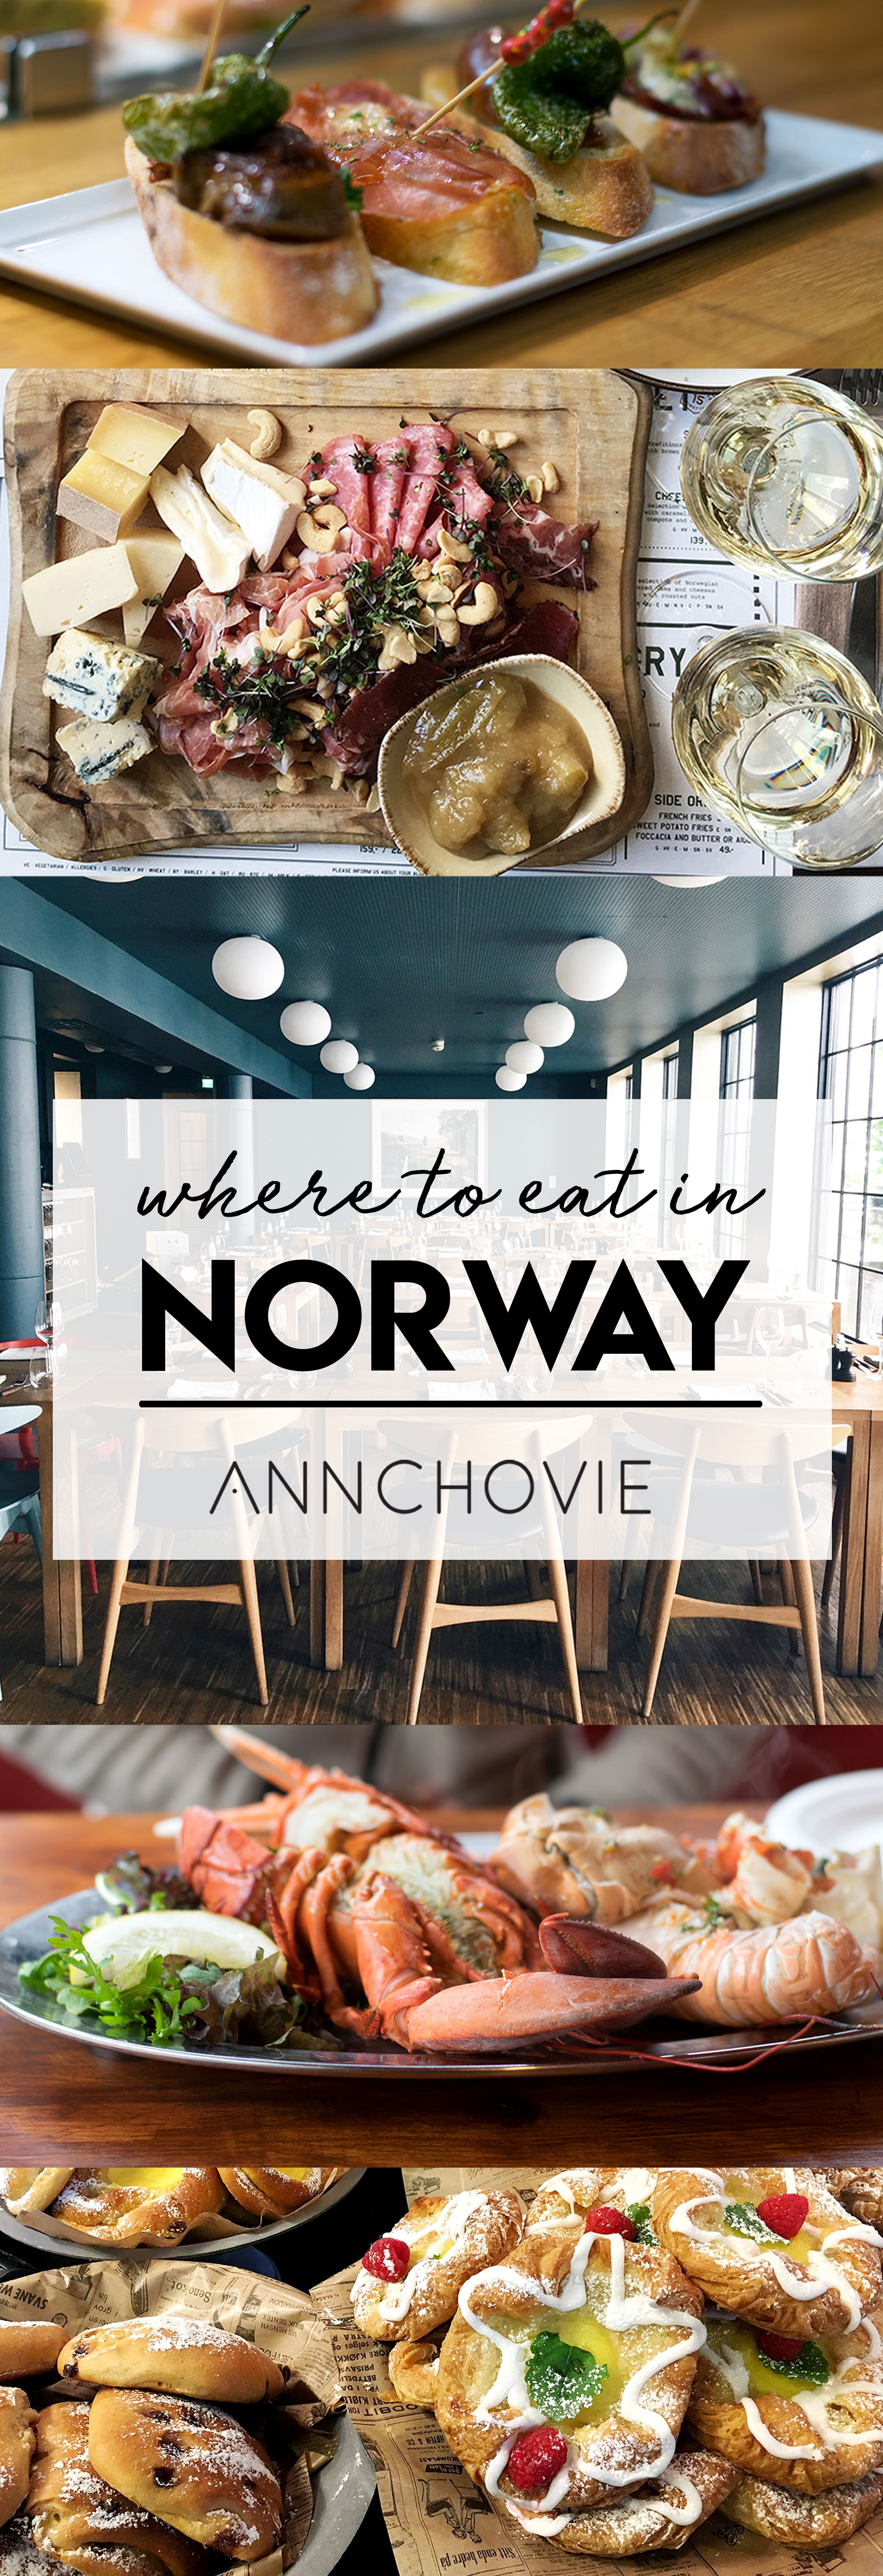 """If you love great coffee culture, fresh seafood, hearty stews, and fresh bread and cheese, check out my food guide """"Where to Eat in Norway,"""" now live on the blog! ❤ It's sure to get you hungry and put a trip to Norway on your to do list! ✔️   NORWAY TRAVEL GUIDE   WHERE TO GO IN NORWAY   NORWAY ITINERARY   WHERE TO EAT IN NORWAY   FOOD GUIDE TO NORWAY  """